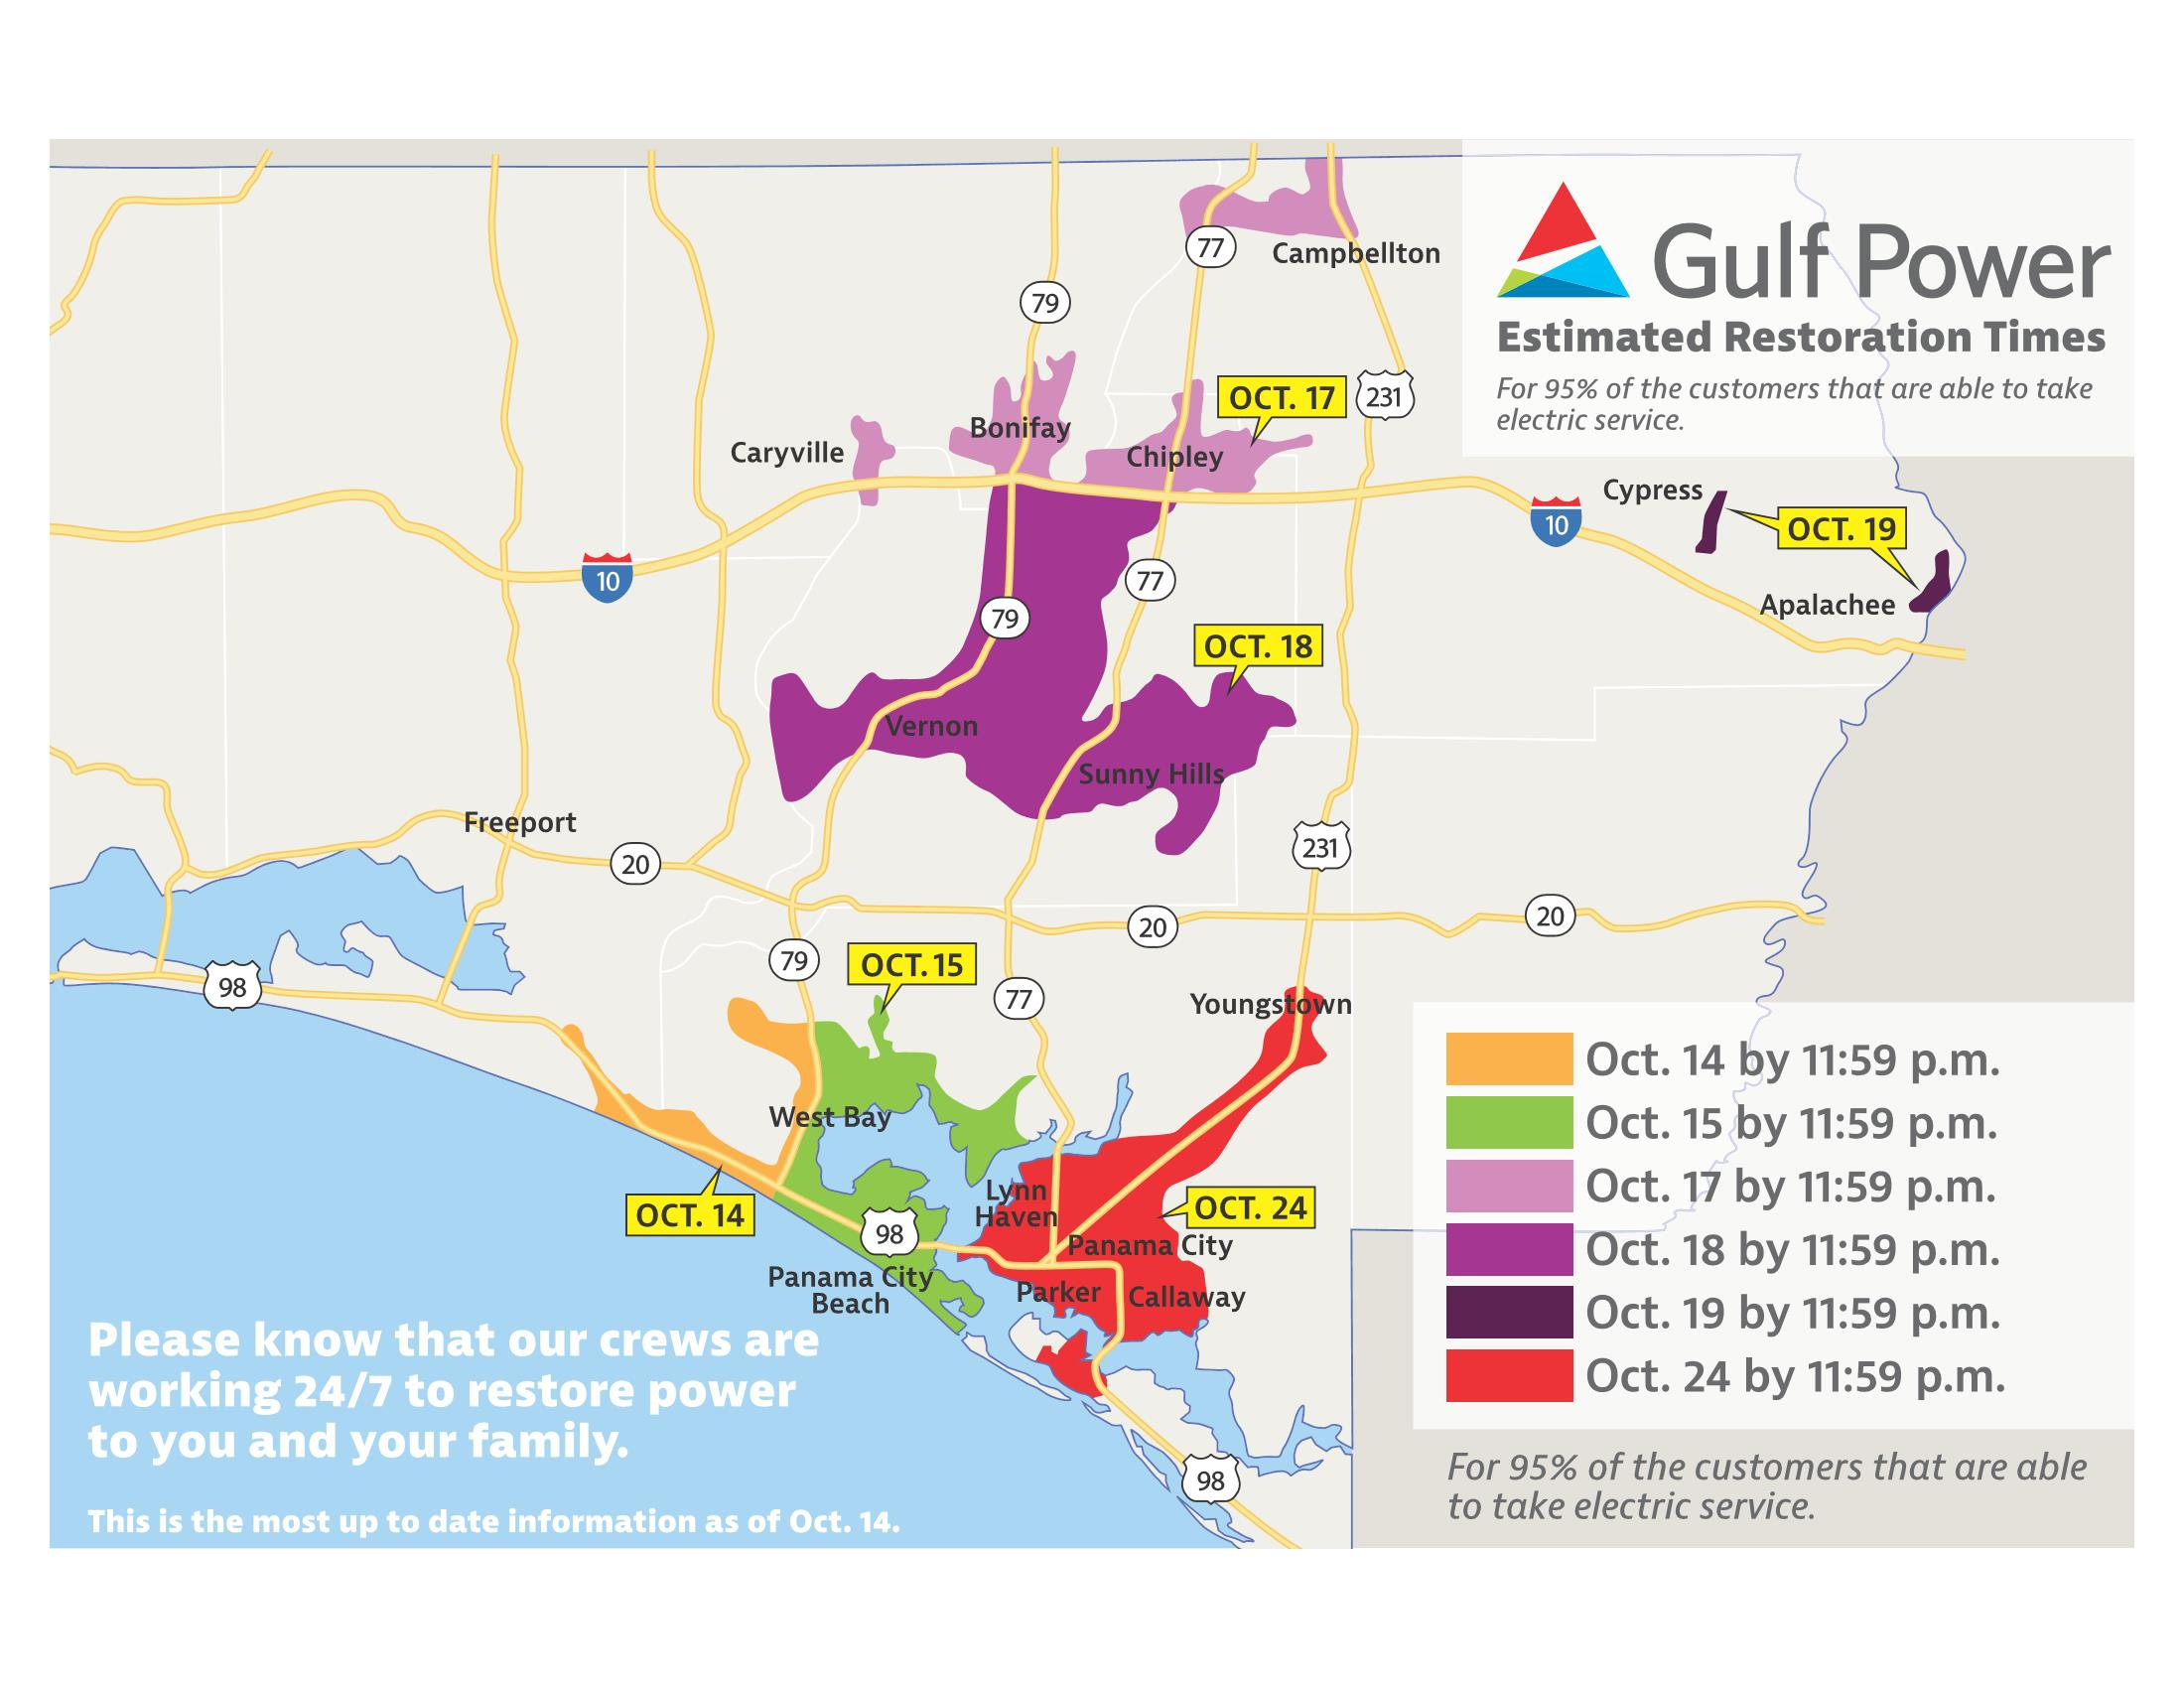 Gulf Power EstimatedRestorationTimes-Map-101418_Page_1